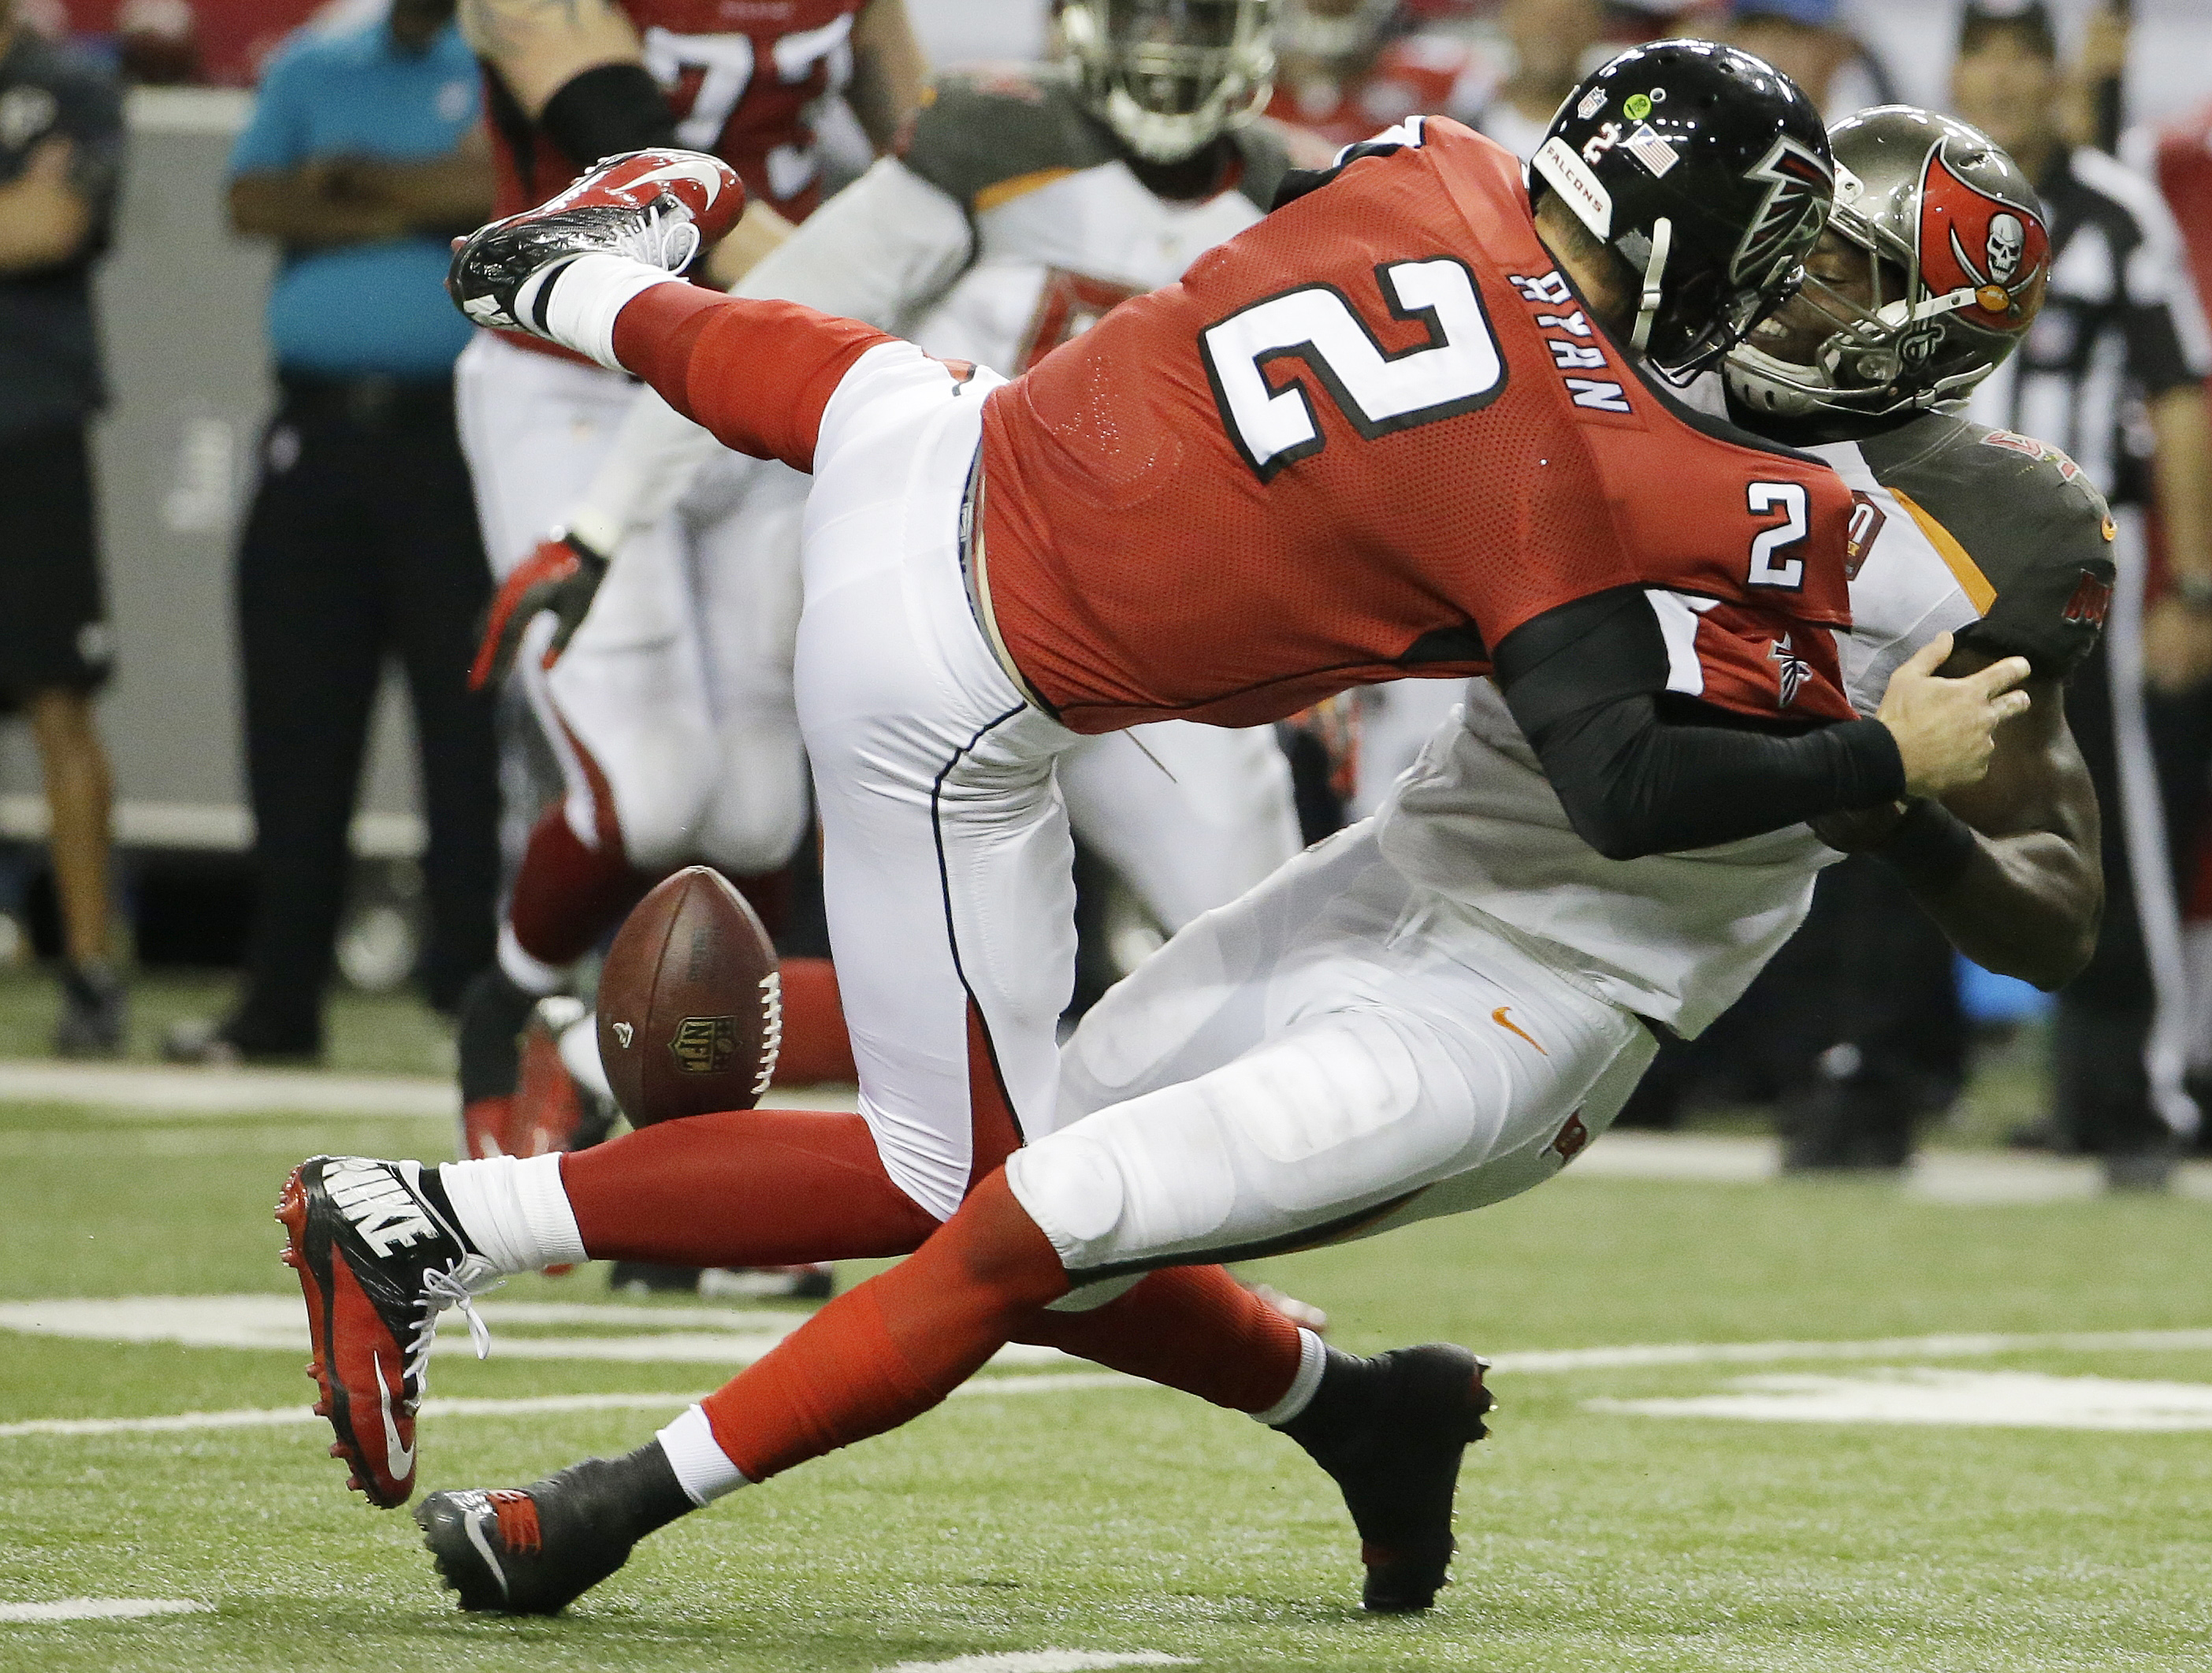 Tampa Bay Buccaneers defensive end Howard Jones (95) pulls at Atlanta Falcons quarterback Matt Ryan (2) causing a fumble during overtime of an NFL football game, Sunday, Nov. 1, 2015, in Atlanta. The Tampa Bay Buccaneers won 23-20. (AP Photo/David Goldman